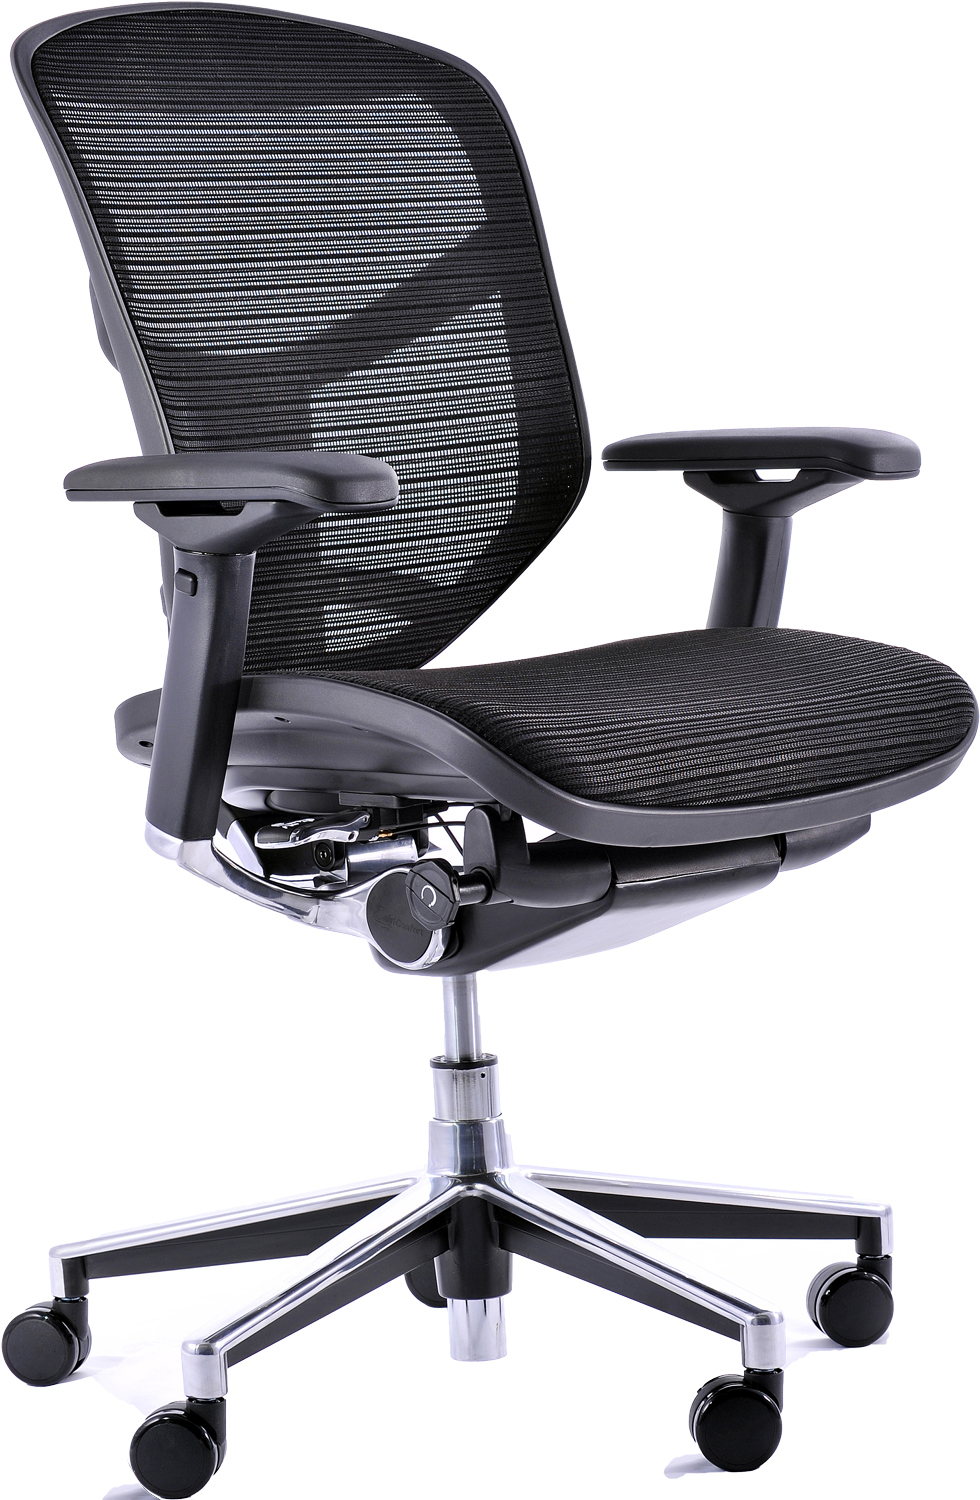 Ergonomic Office Chair Bangalore Office Chair Bangalore : Ergonomic Office Chairs Bangalore Most Comfortable <strong>Executive Chair</strong> from www.spandanindia.com size 980 x 1500 jpeg 776kB